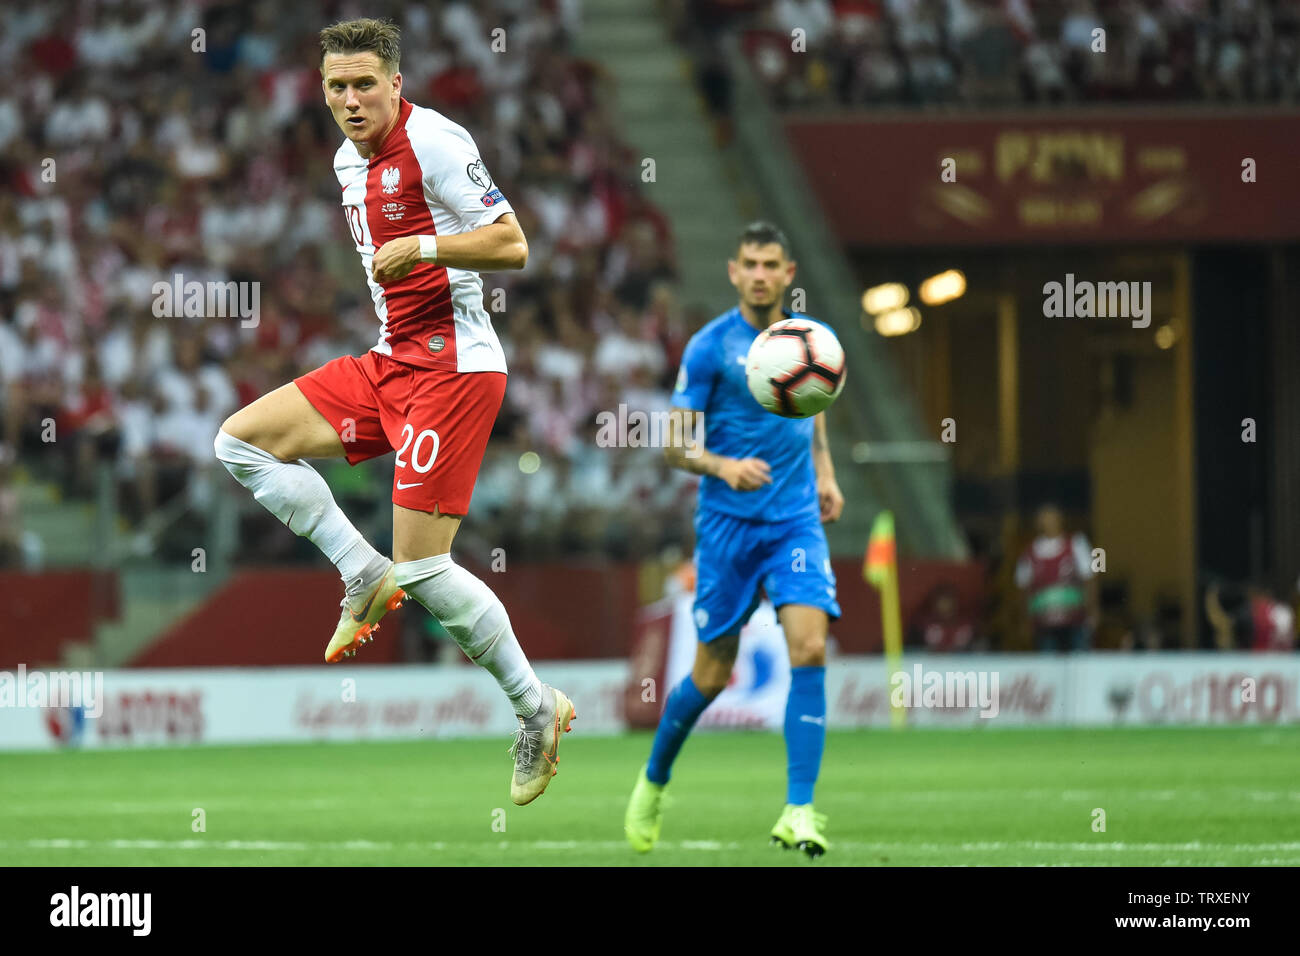 WARSAW, POLAND - JUNE 10, 2019: Qualifications Euro 2020  match Poland - Israel 4:0. In action Piotr Zielinski. - Stock Image